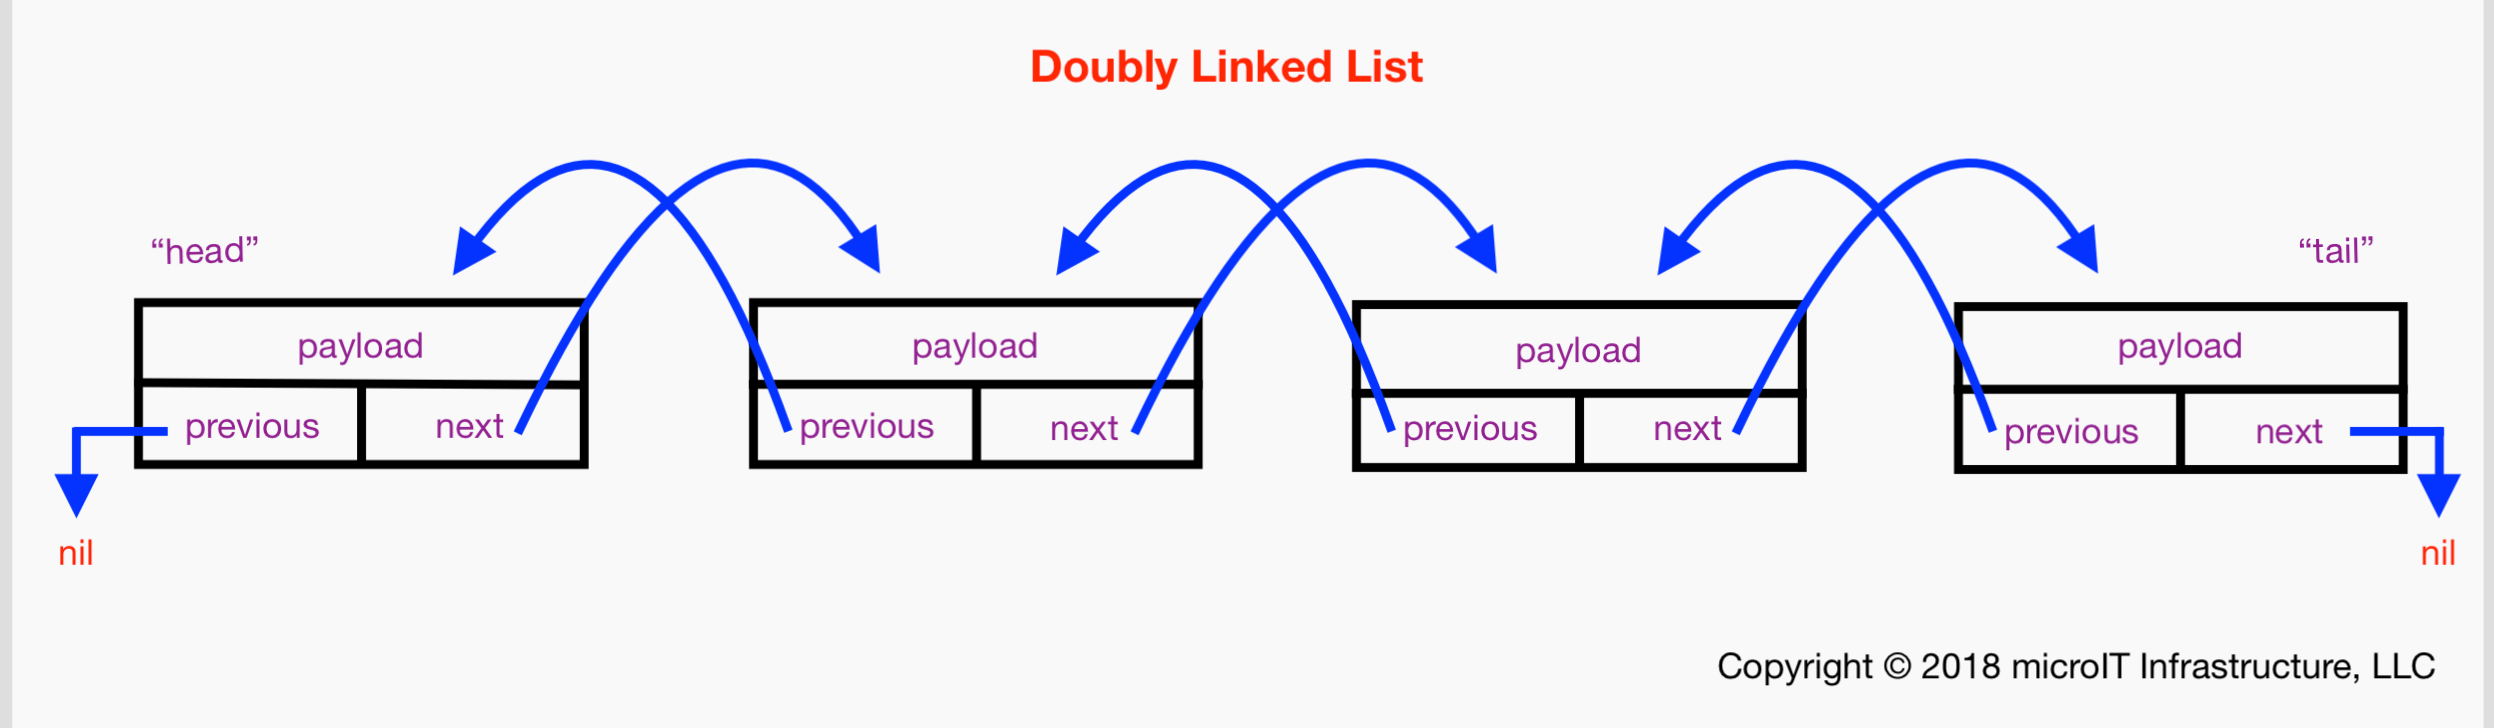 Protocol-oriented Data Structures in Swift: A Generic Doubly Linked List 1